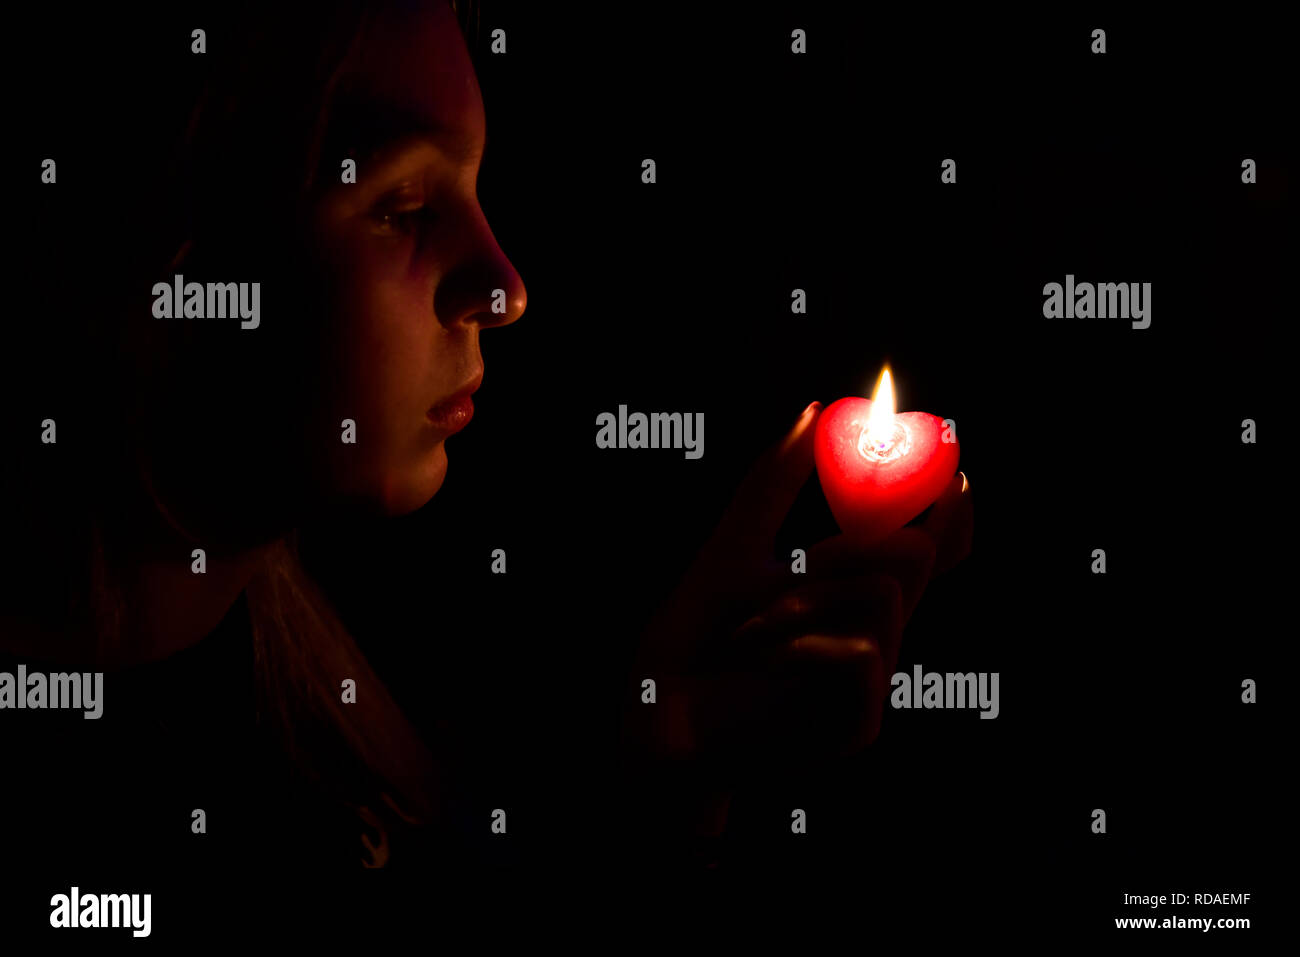 The girl in the dark looking at a lighted candle - Stock Image